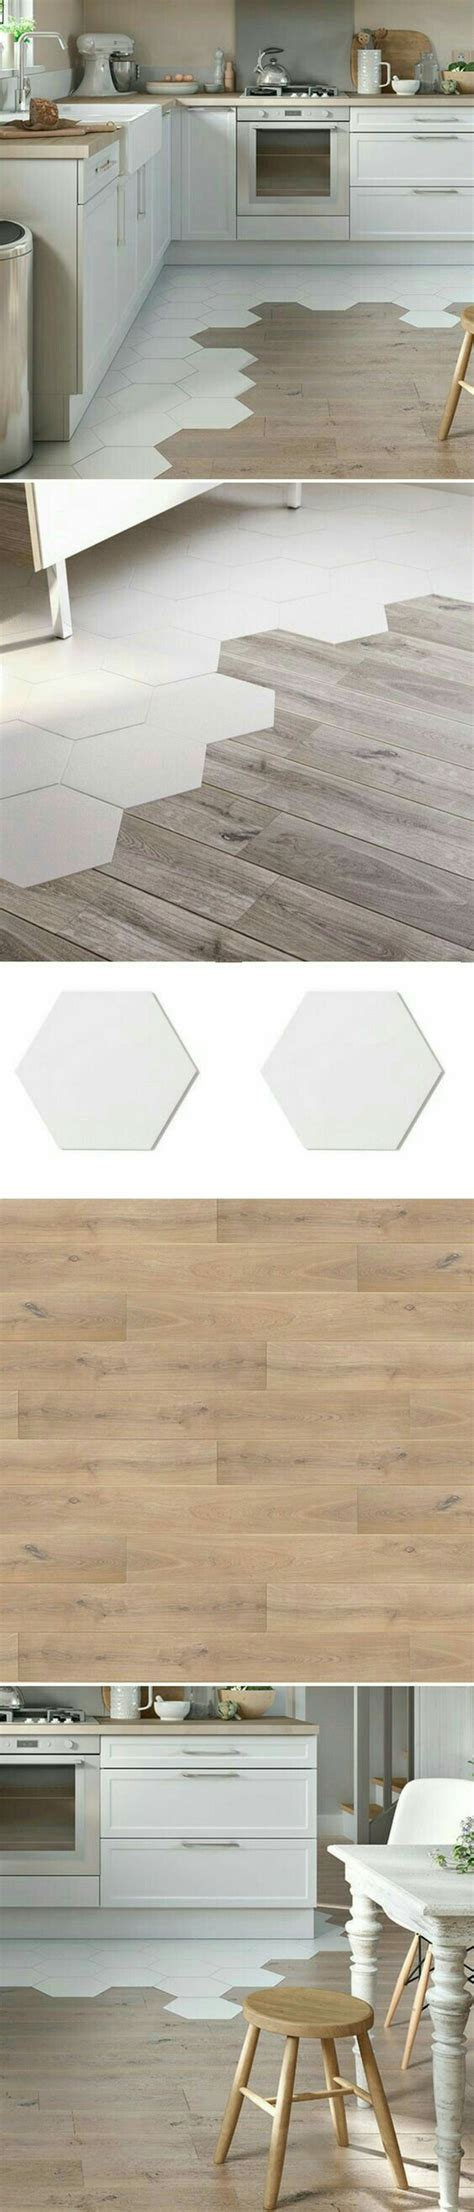 kitchen flooring tile 40 best innovative laminate ideas images on 1717